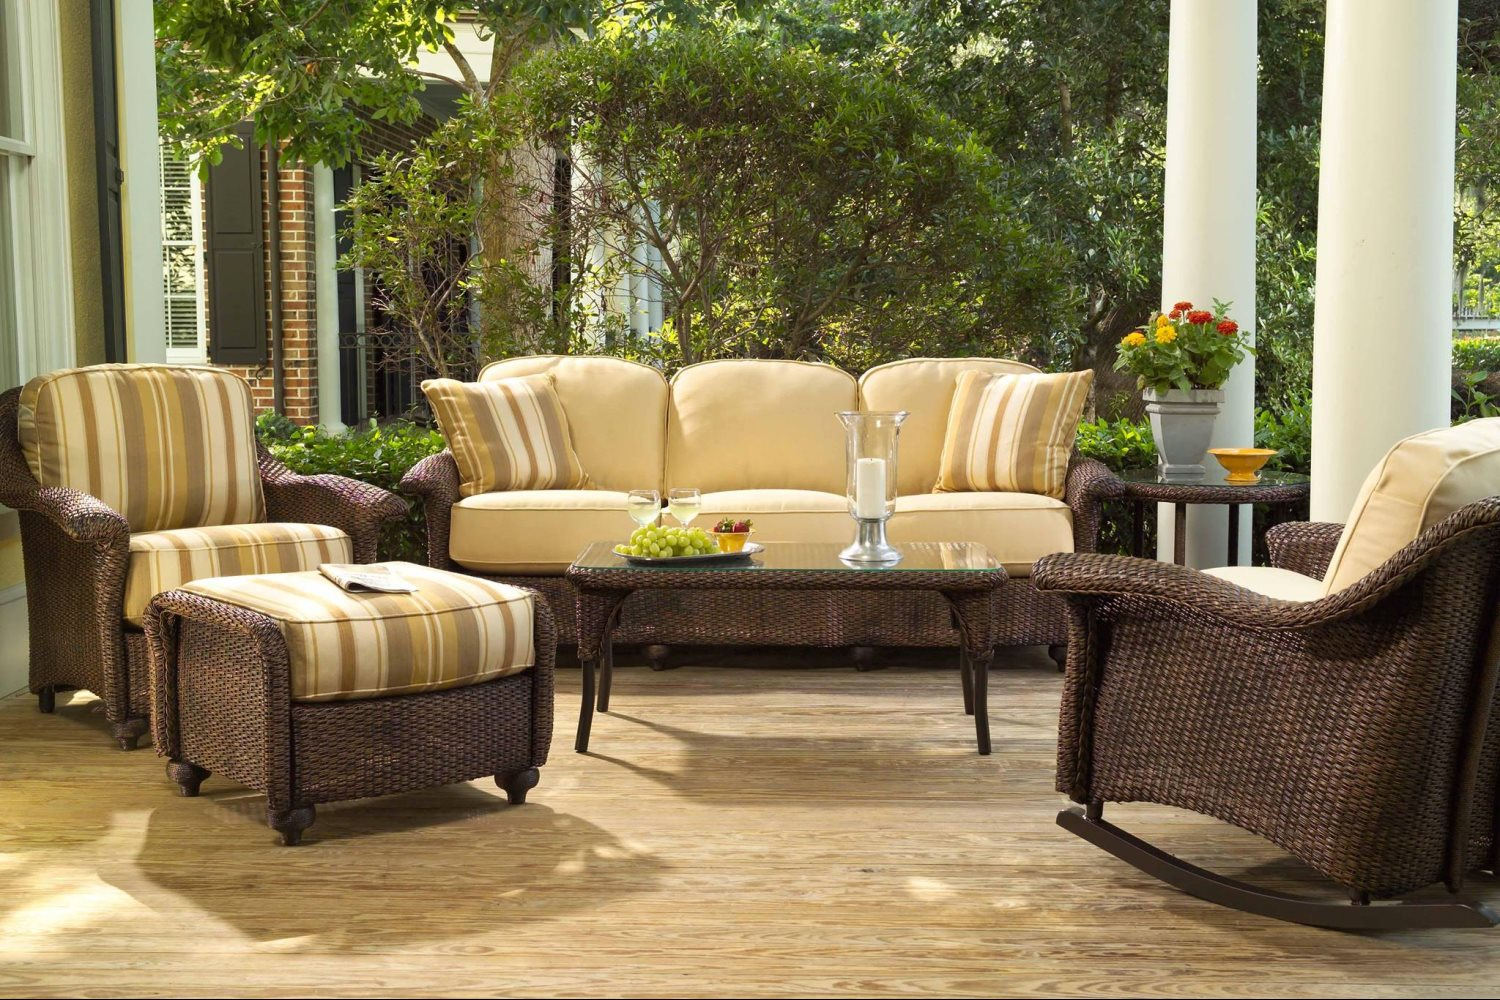 Patio furniture outdoor seating dining patio for I furniture outdoor furniture